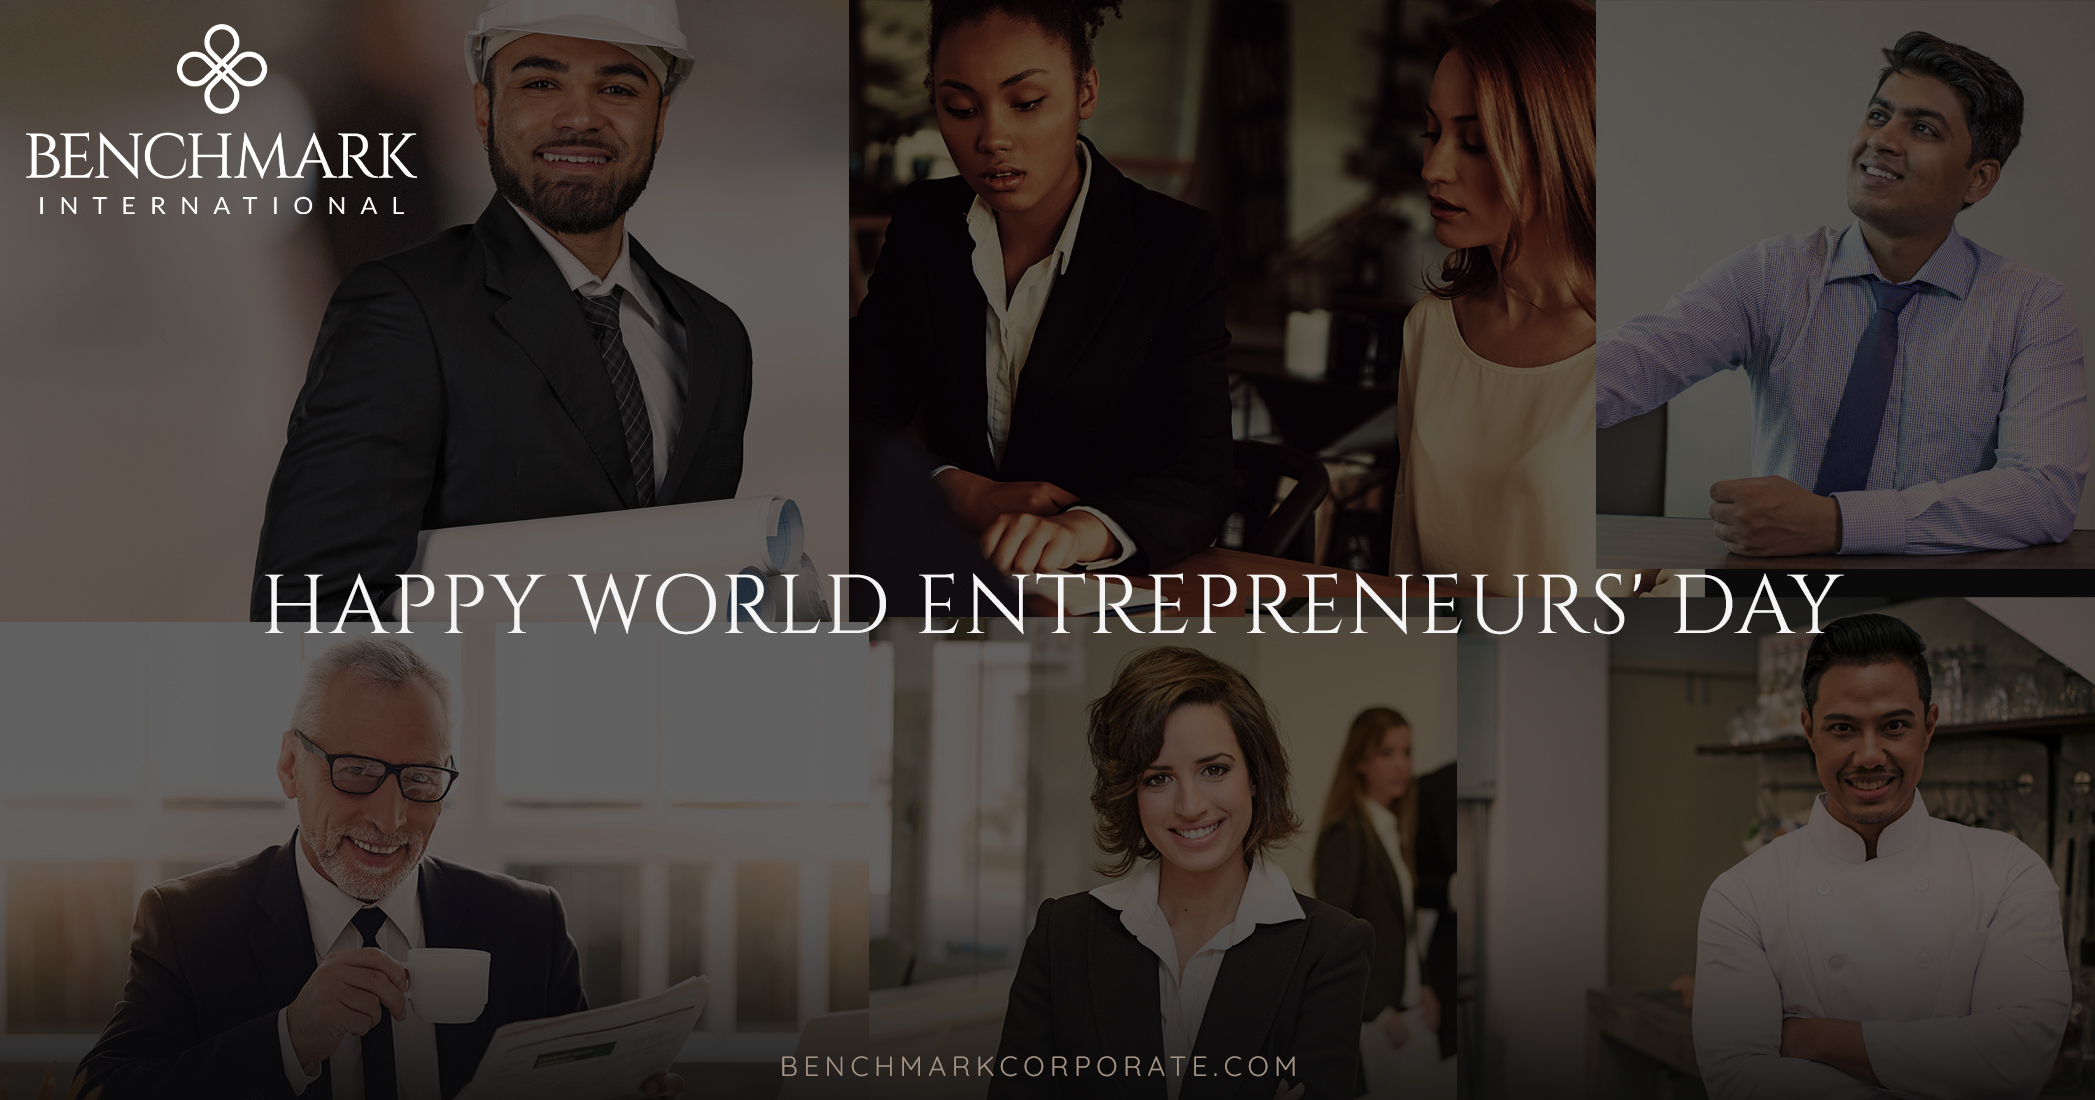 Happy World Entrepreneurs' Day!